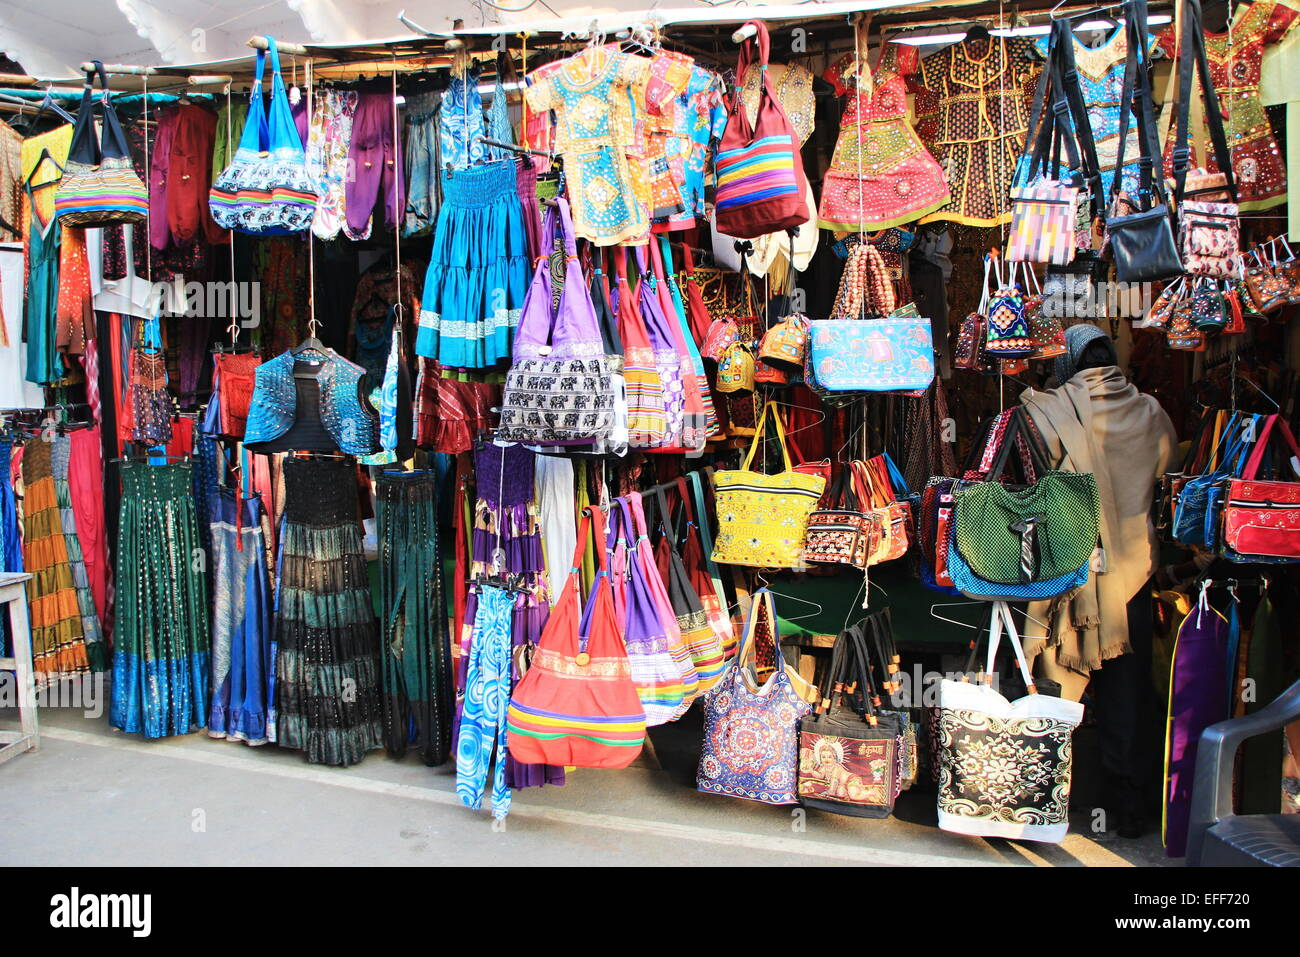 Window display of apparels and bags in a street Stock Photo